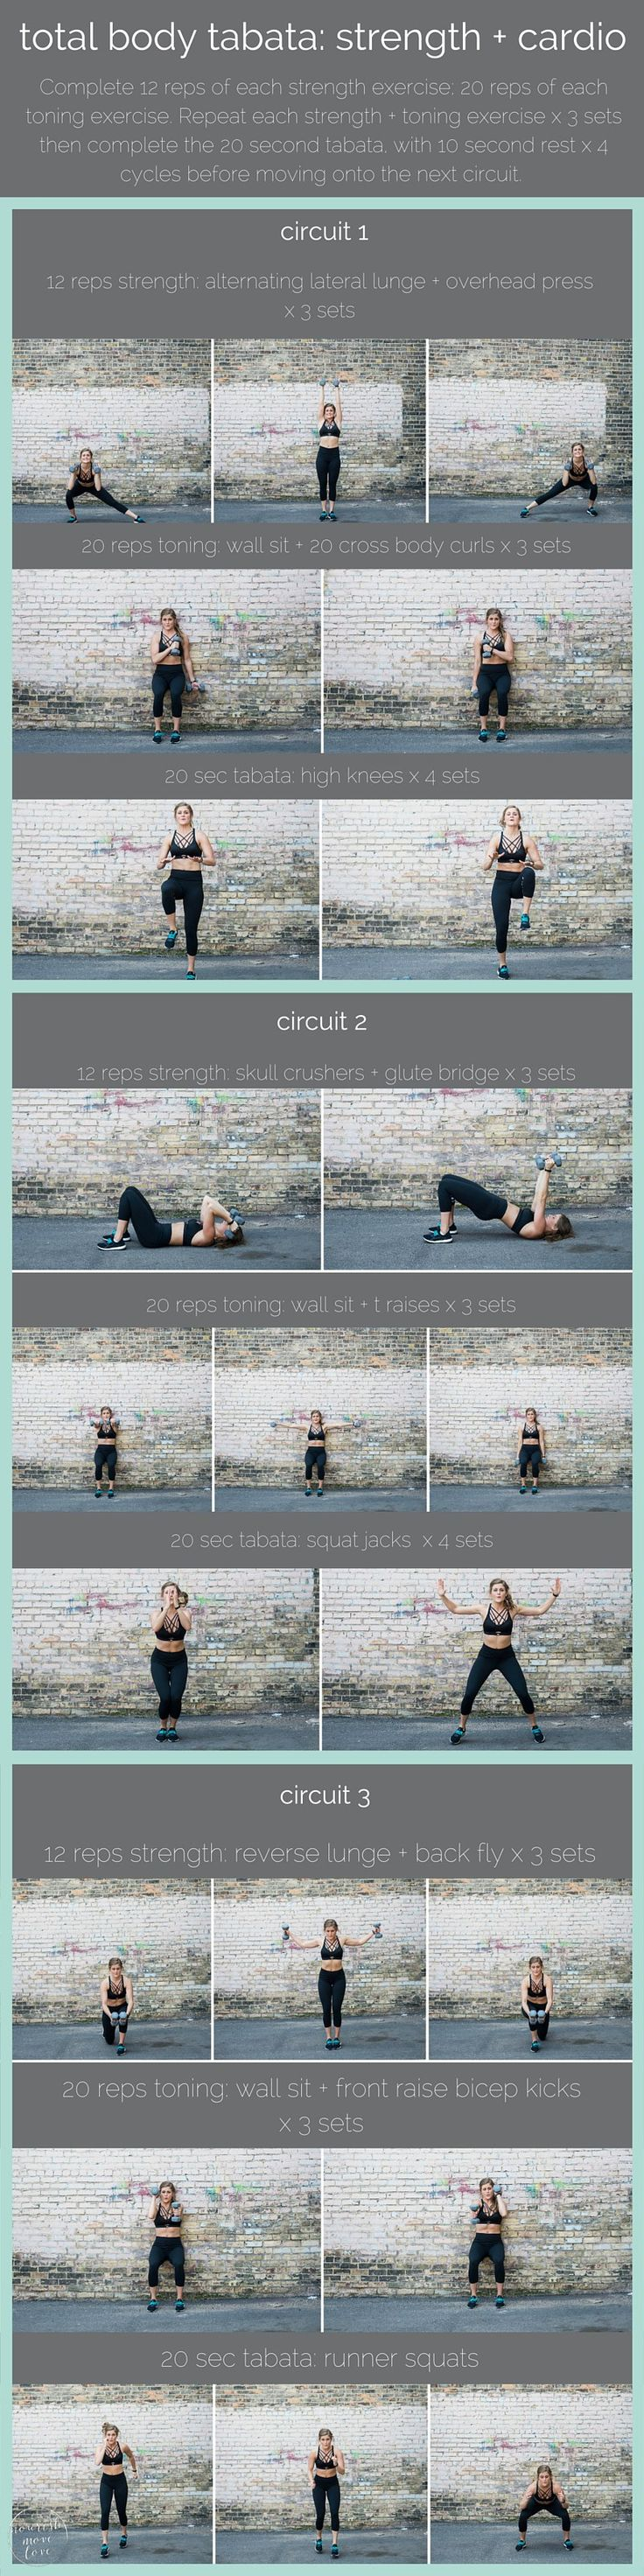 total body tabata with dumbbells {cardio + strength} | ready to test your cardiovascular stamina? combine dumbbell strength training with cardio intervals in this tri-circuit, total body tabata workout. | www.nourishmovelove.com